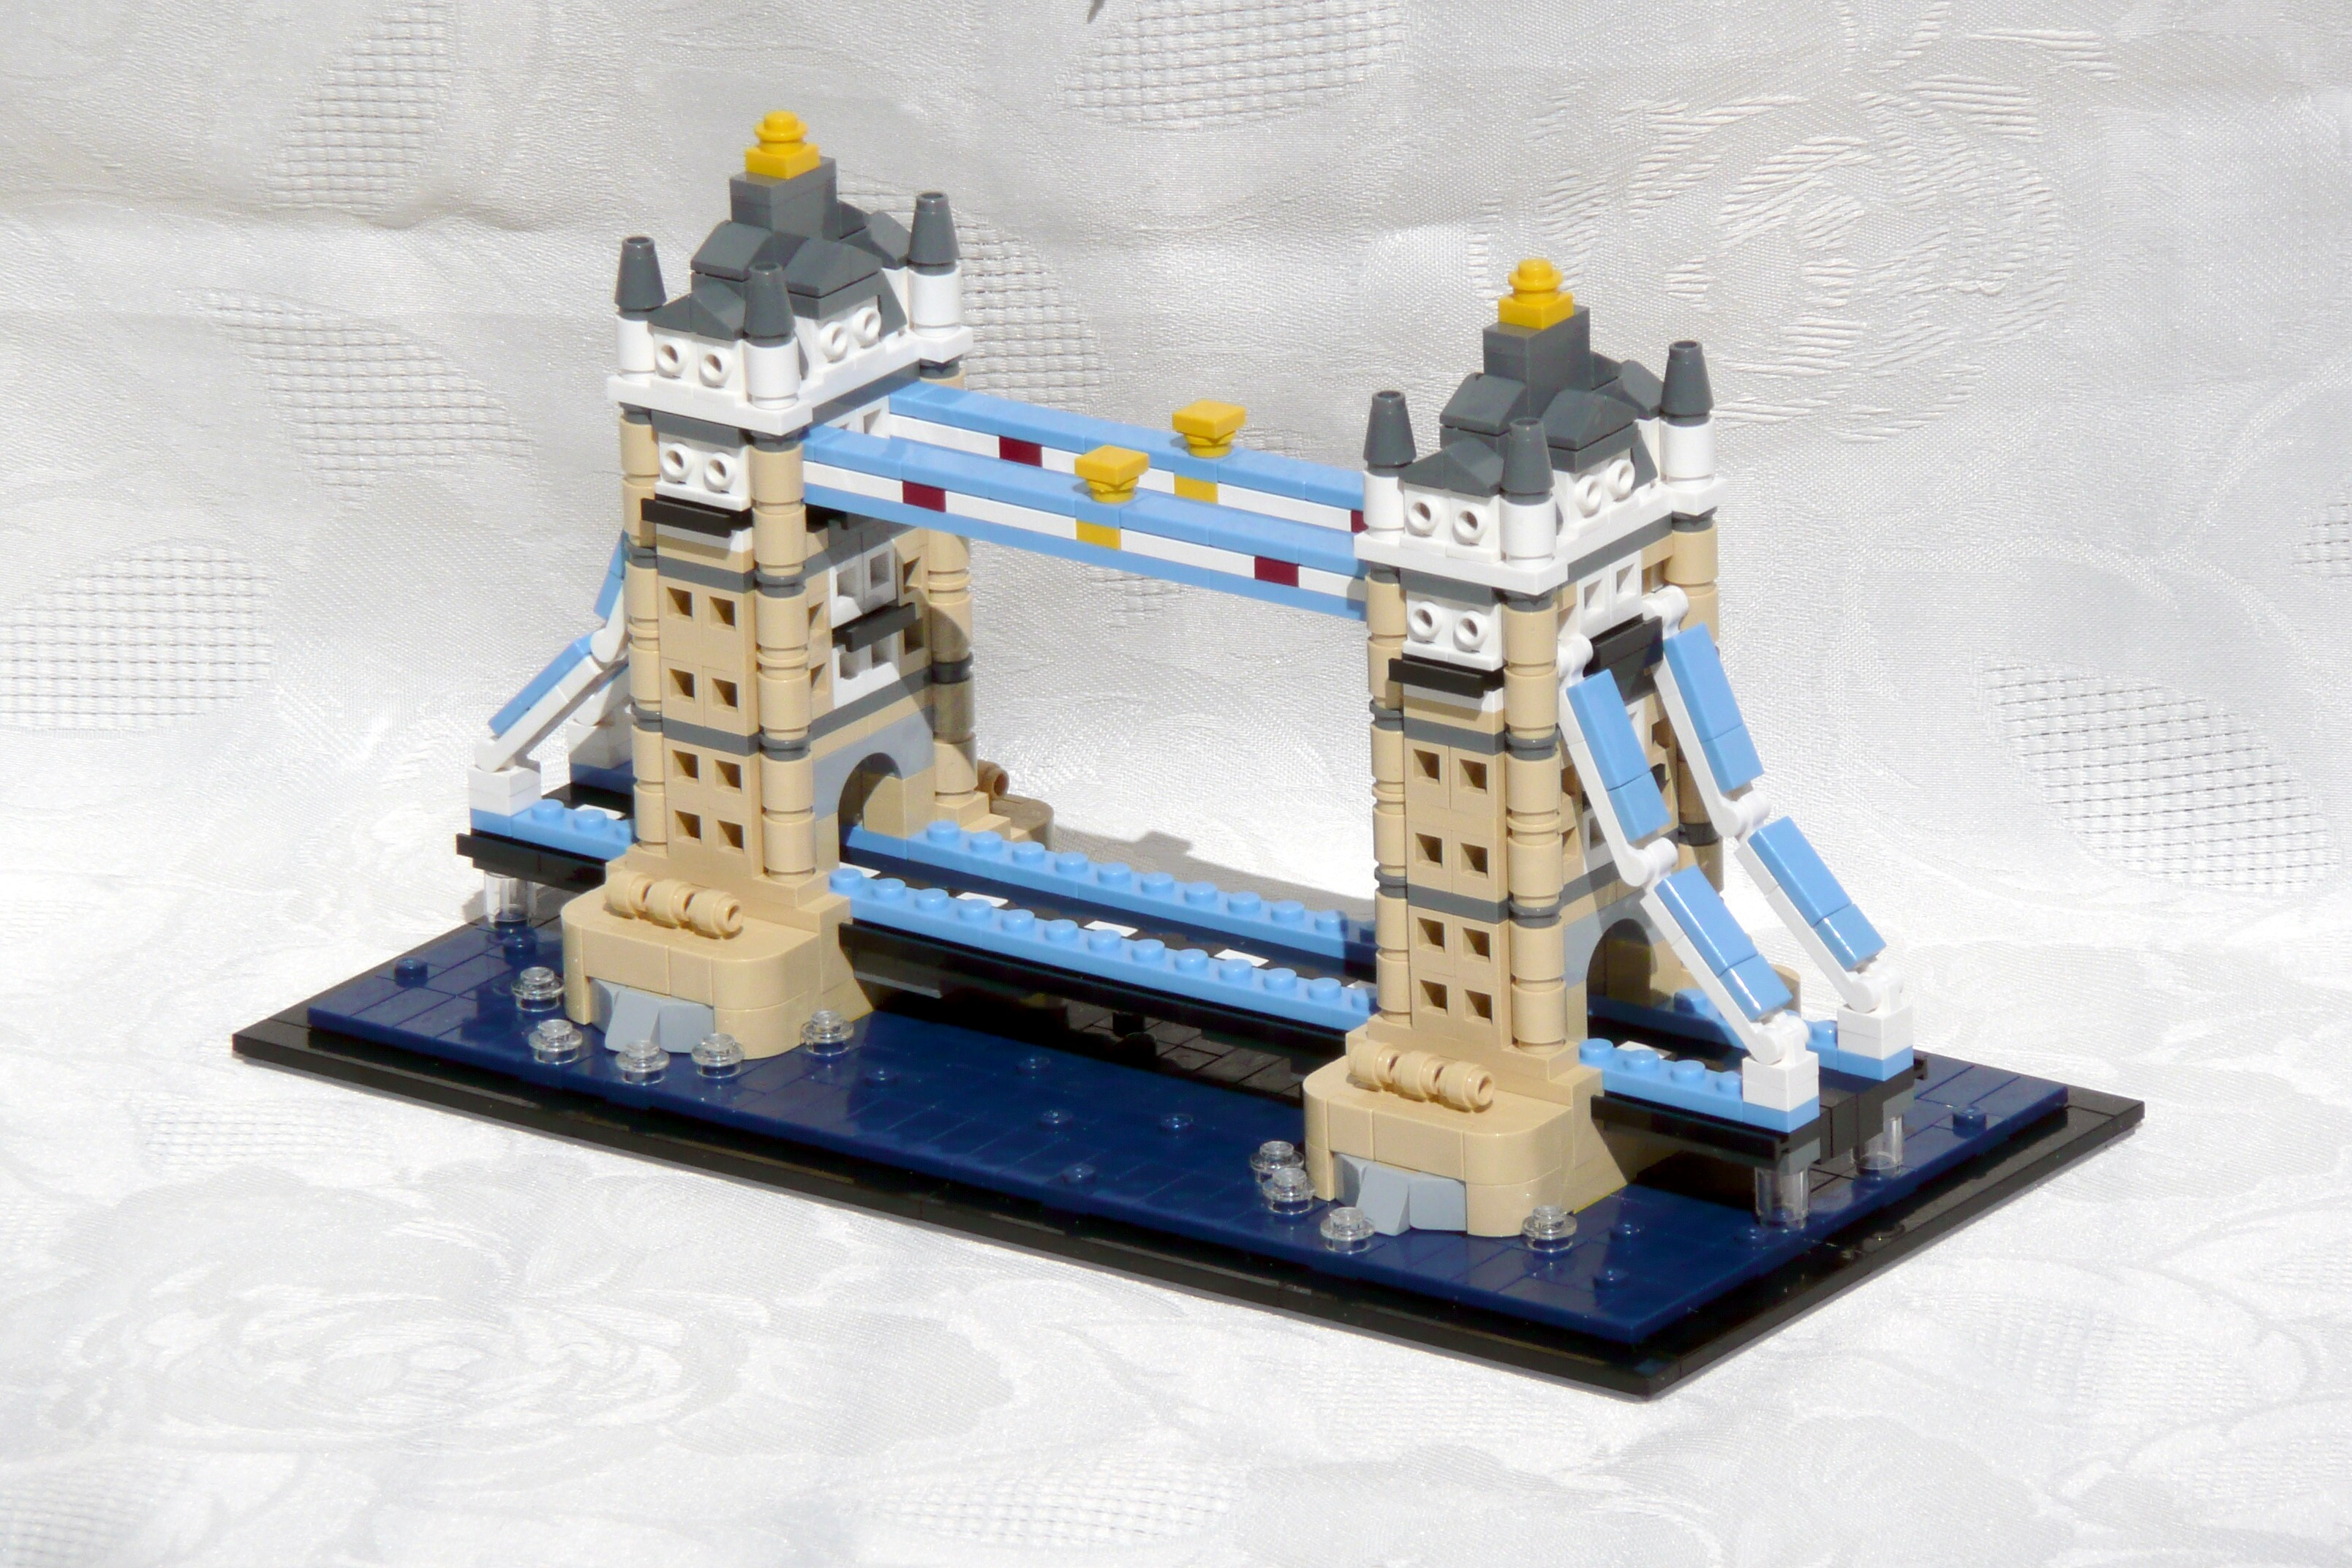 tower-bridge-101-20-tower-bridge.jpg